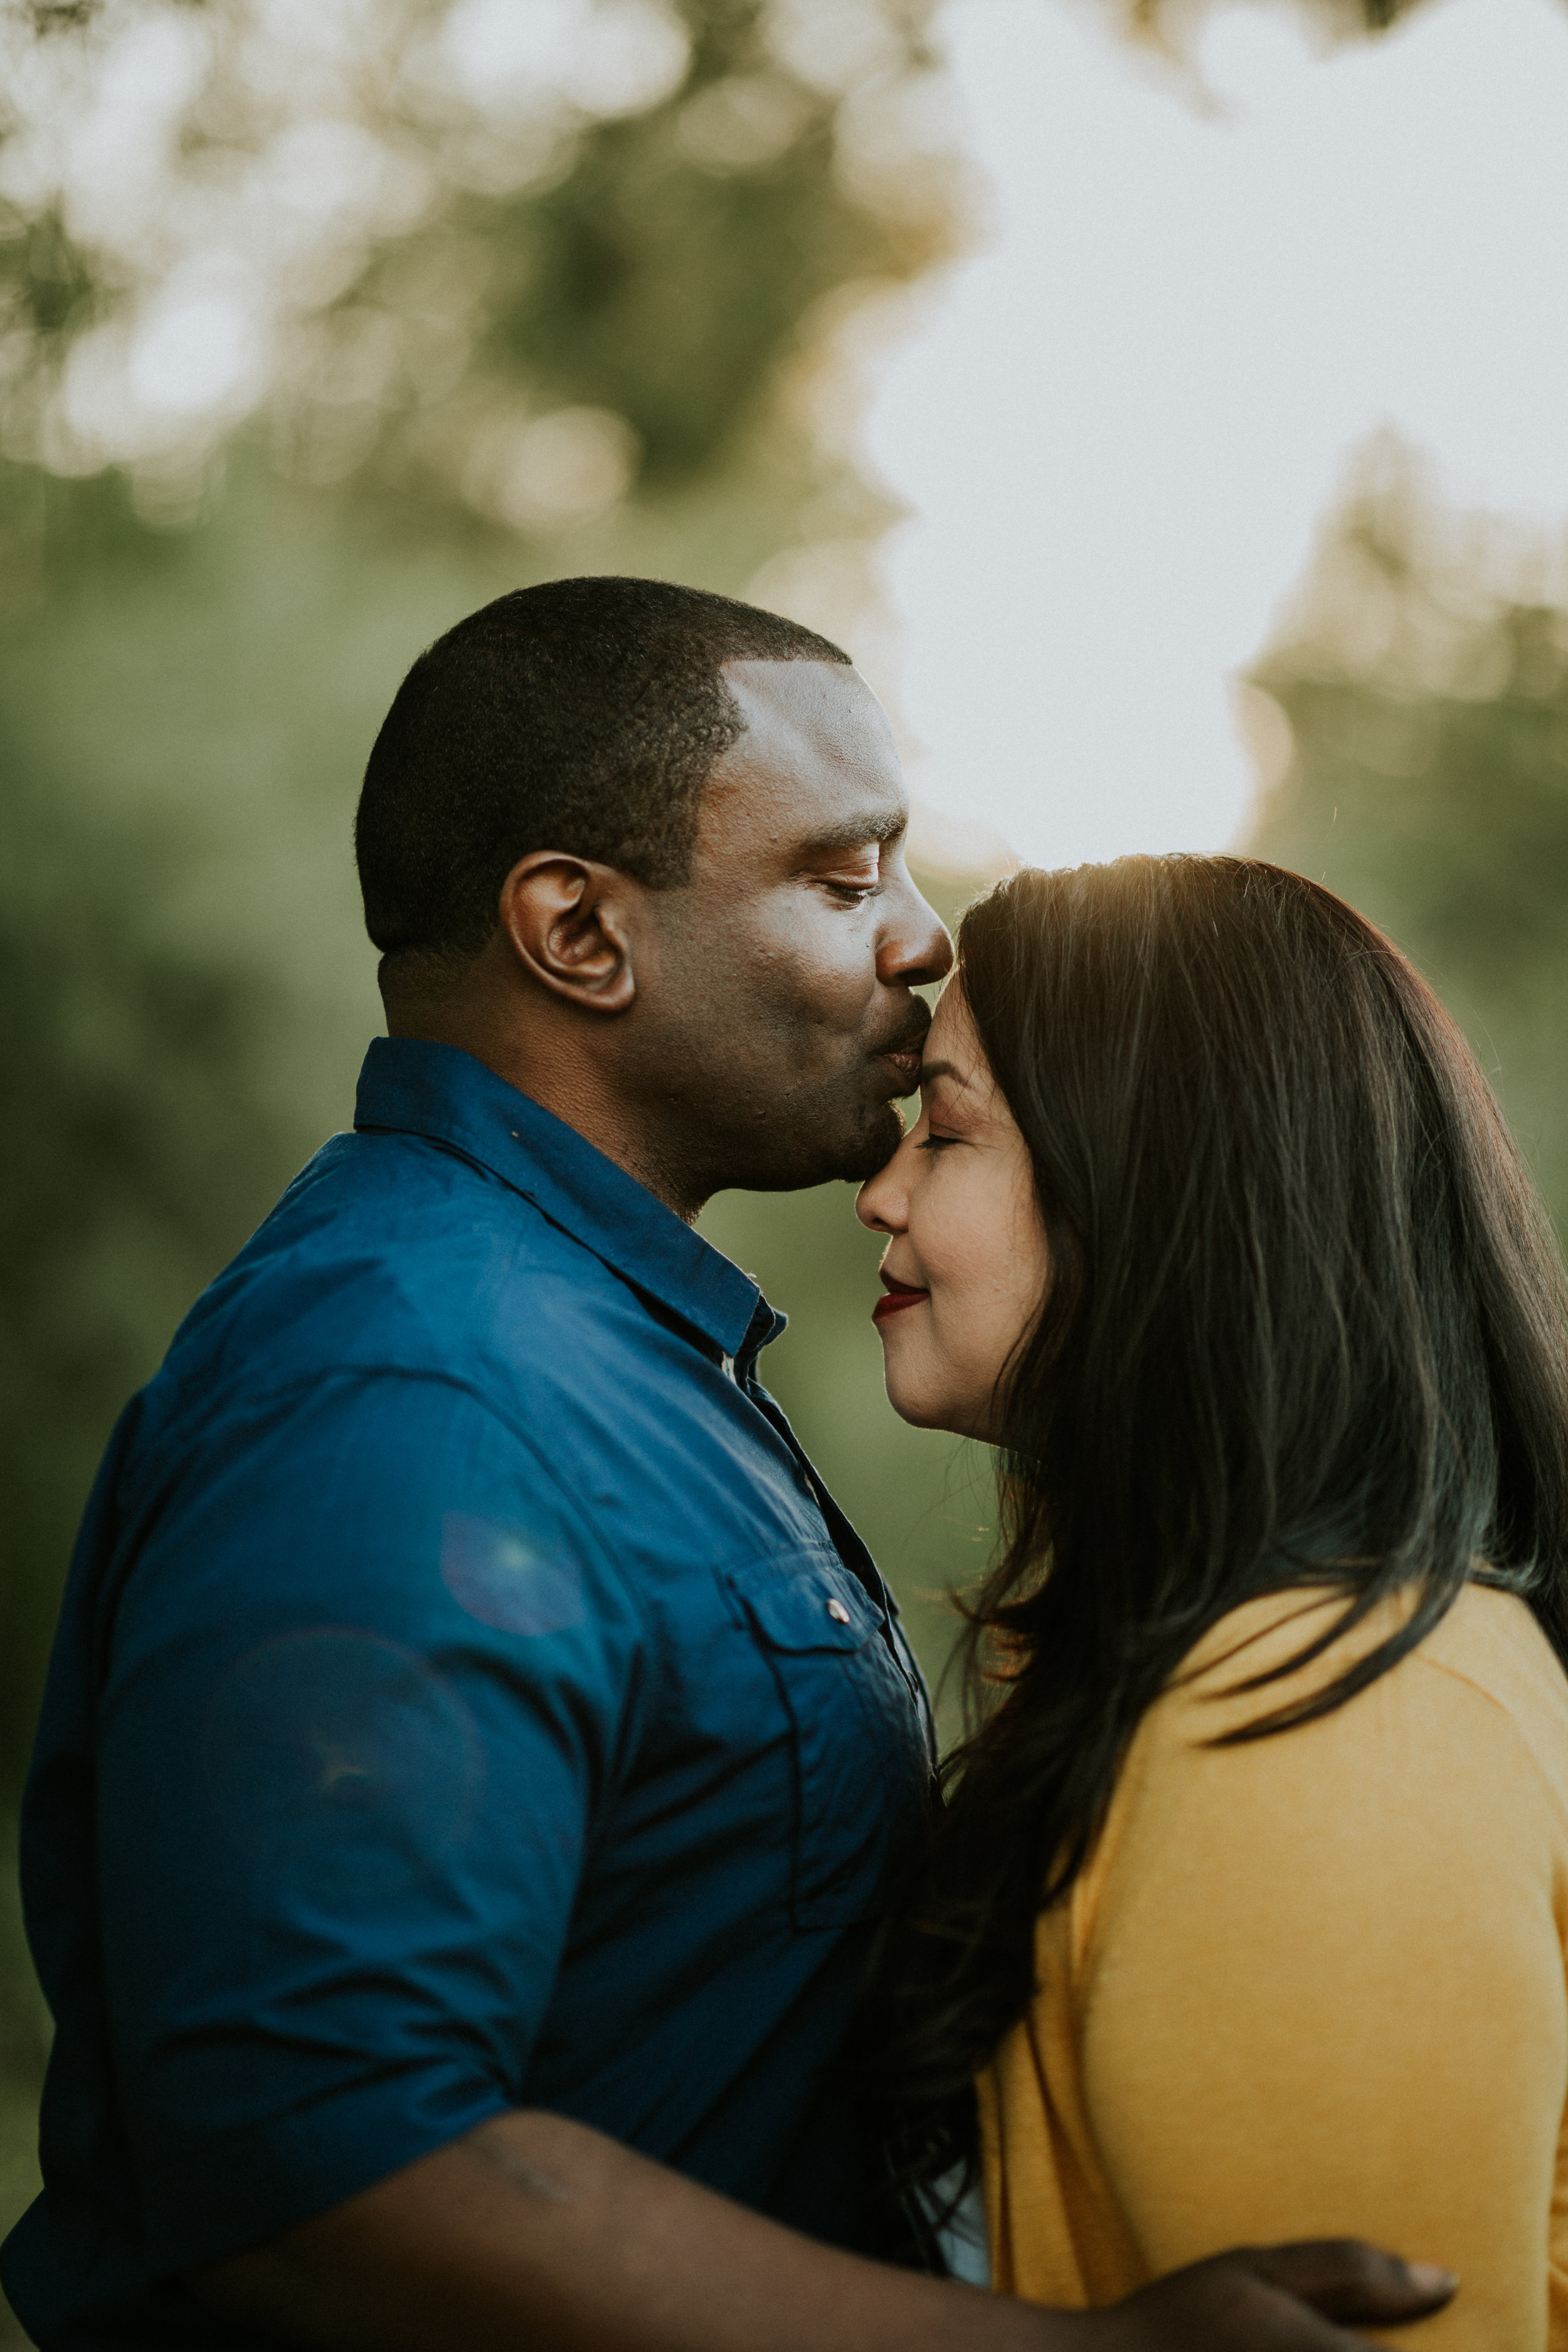 Guy kissing his fiance's forehead